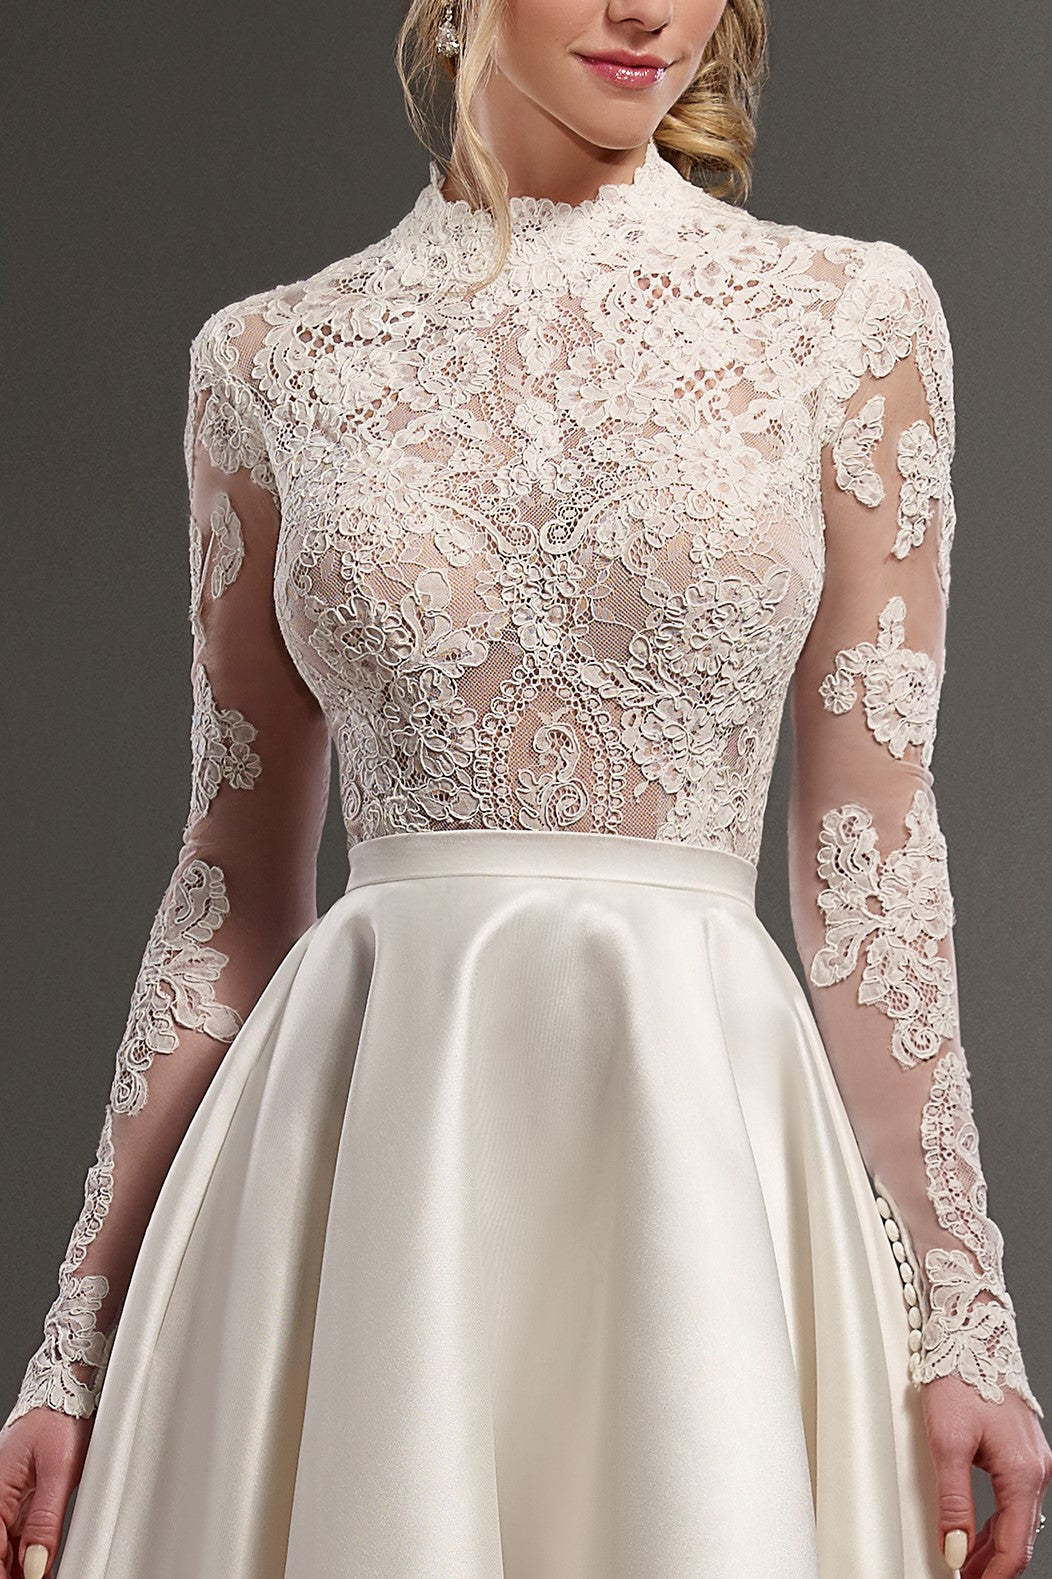 Luxury Lace Illusion High Neck Long Sleeves High-Low Trendy Bridal Wedding Dress